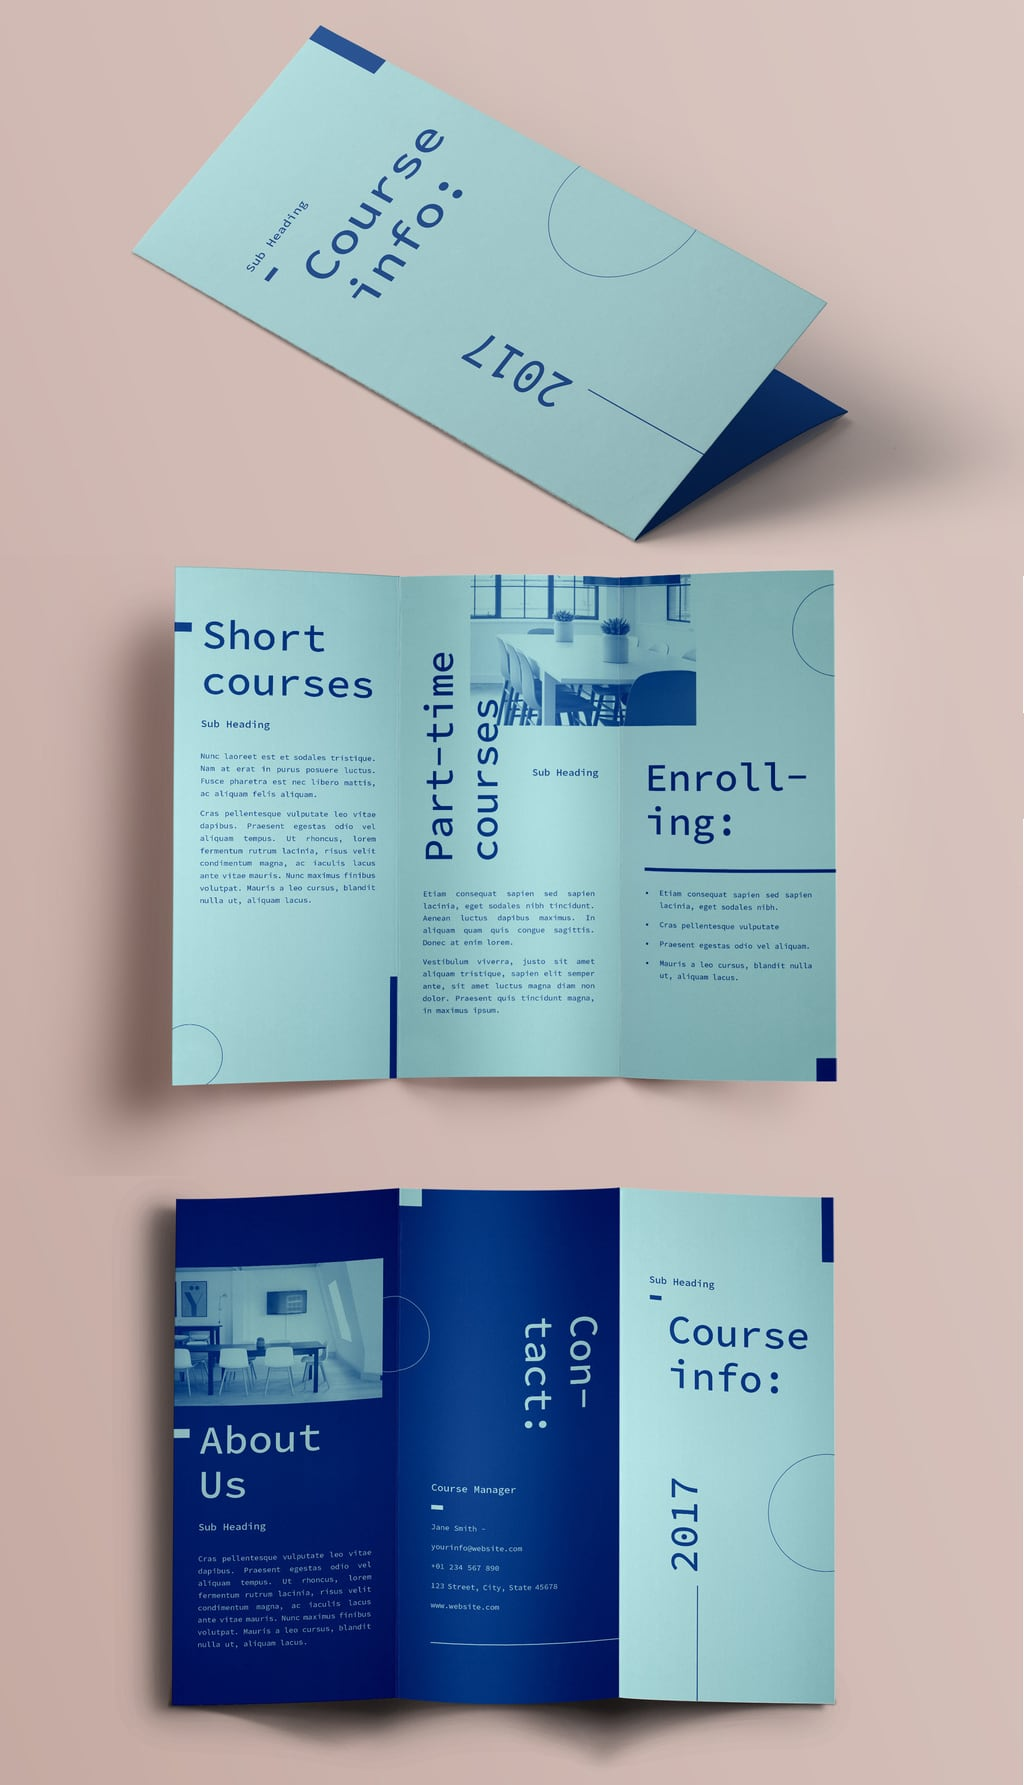 InDesign Trifold Template Free: Classic Brochure Layout